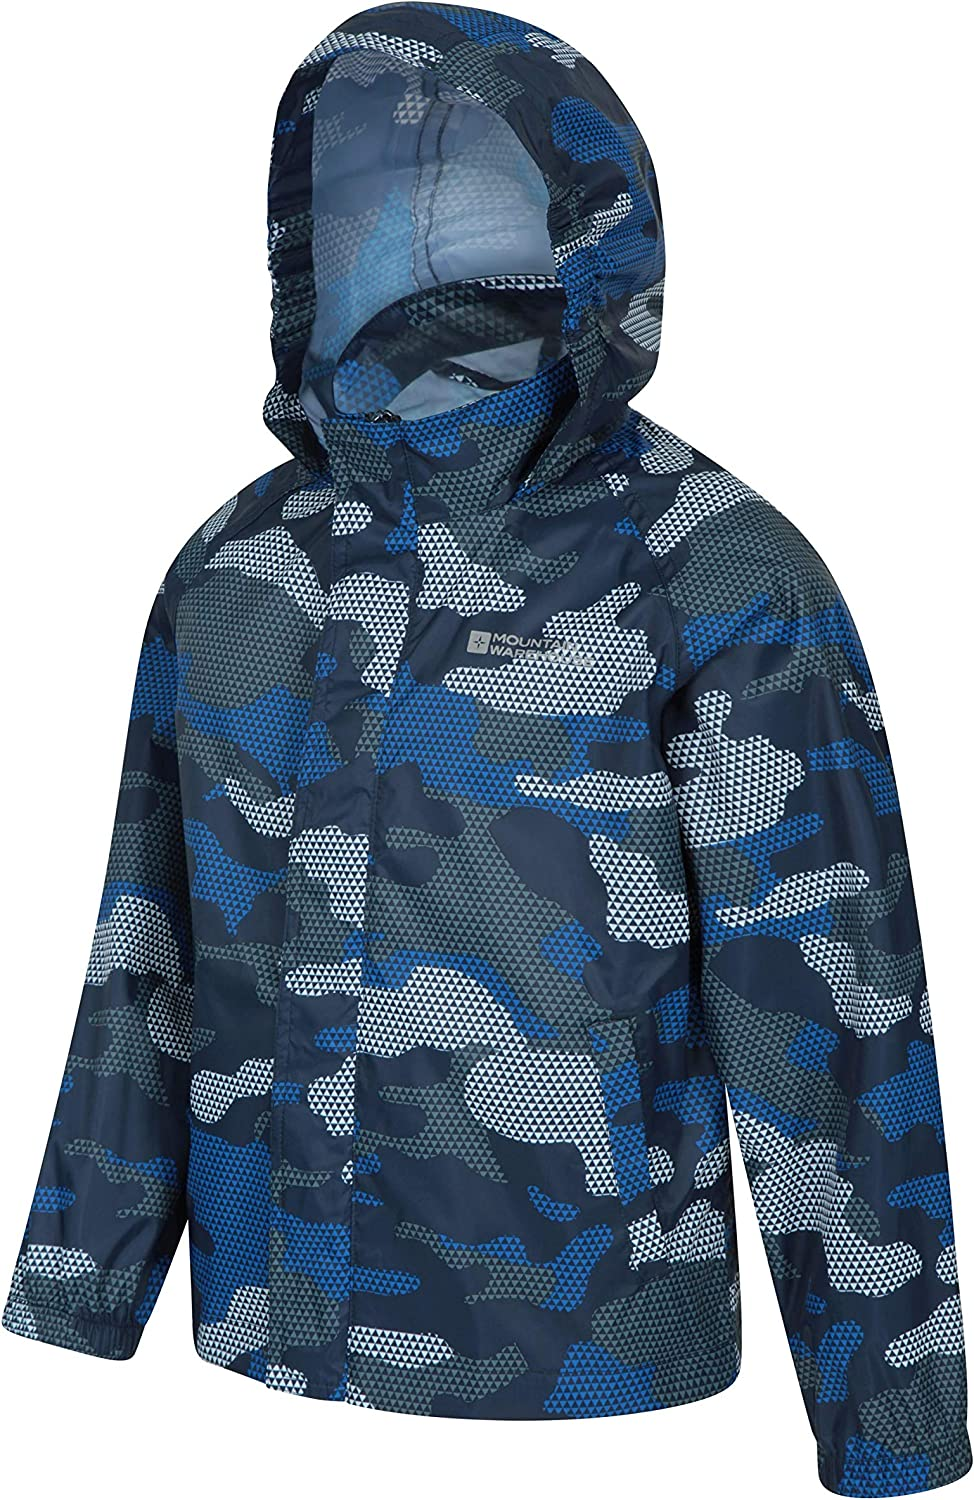 Hooded- Winter Clothing for Travel Adjustable Cuffs Water Resistant Rain Coat Outdoor Mountain Warehouse Logan Kids Padded Jacket Warm Childrens Outerwear